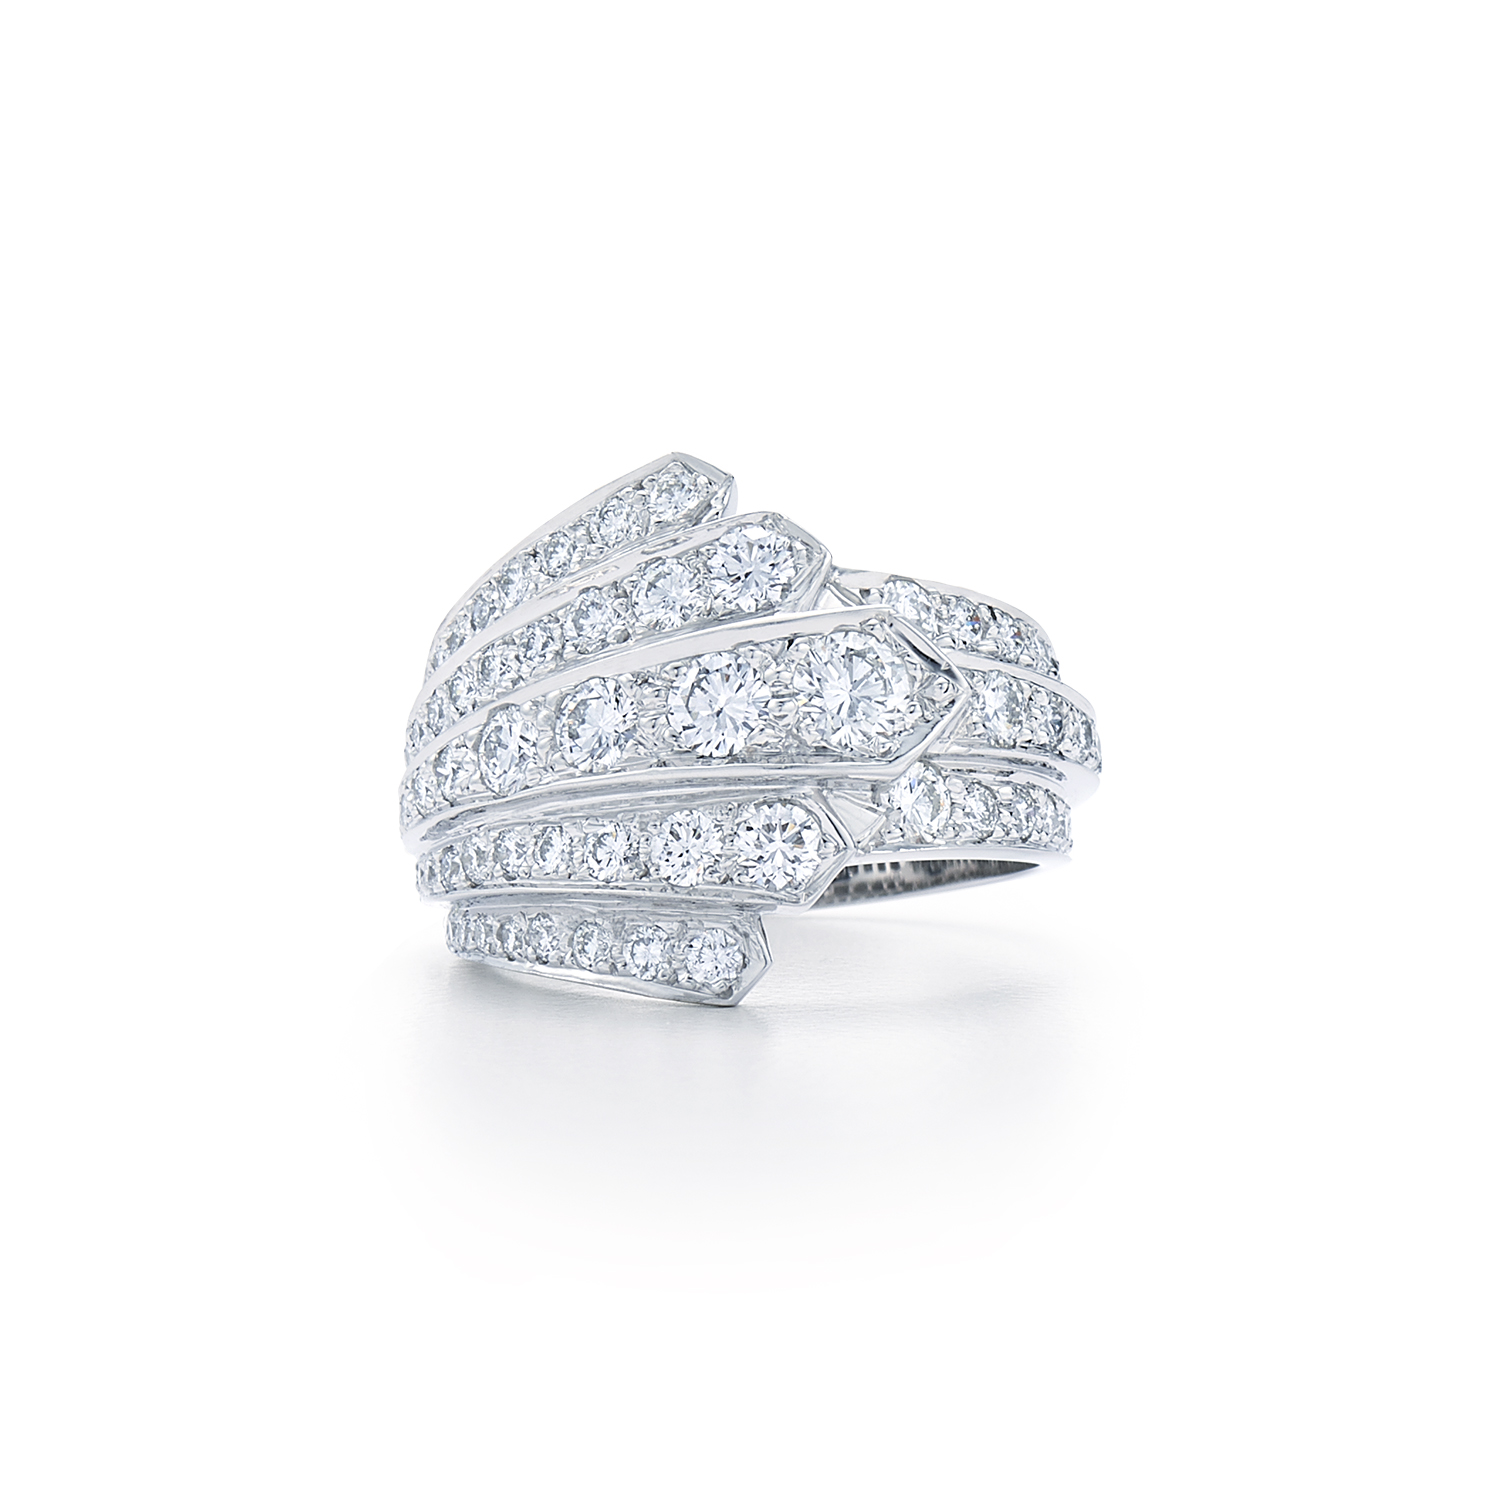 ring pave band plat in with set round solitaire platinum engagement brilliant diamond style jewelry halo kwiat and